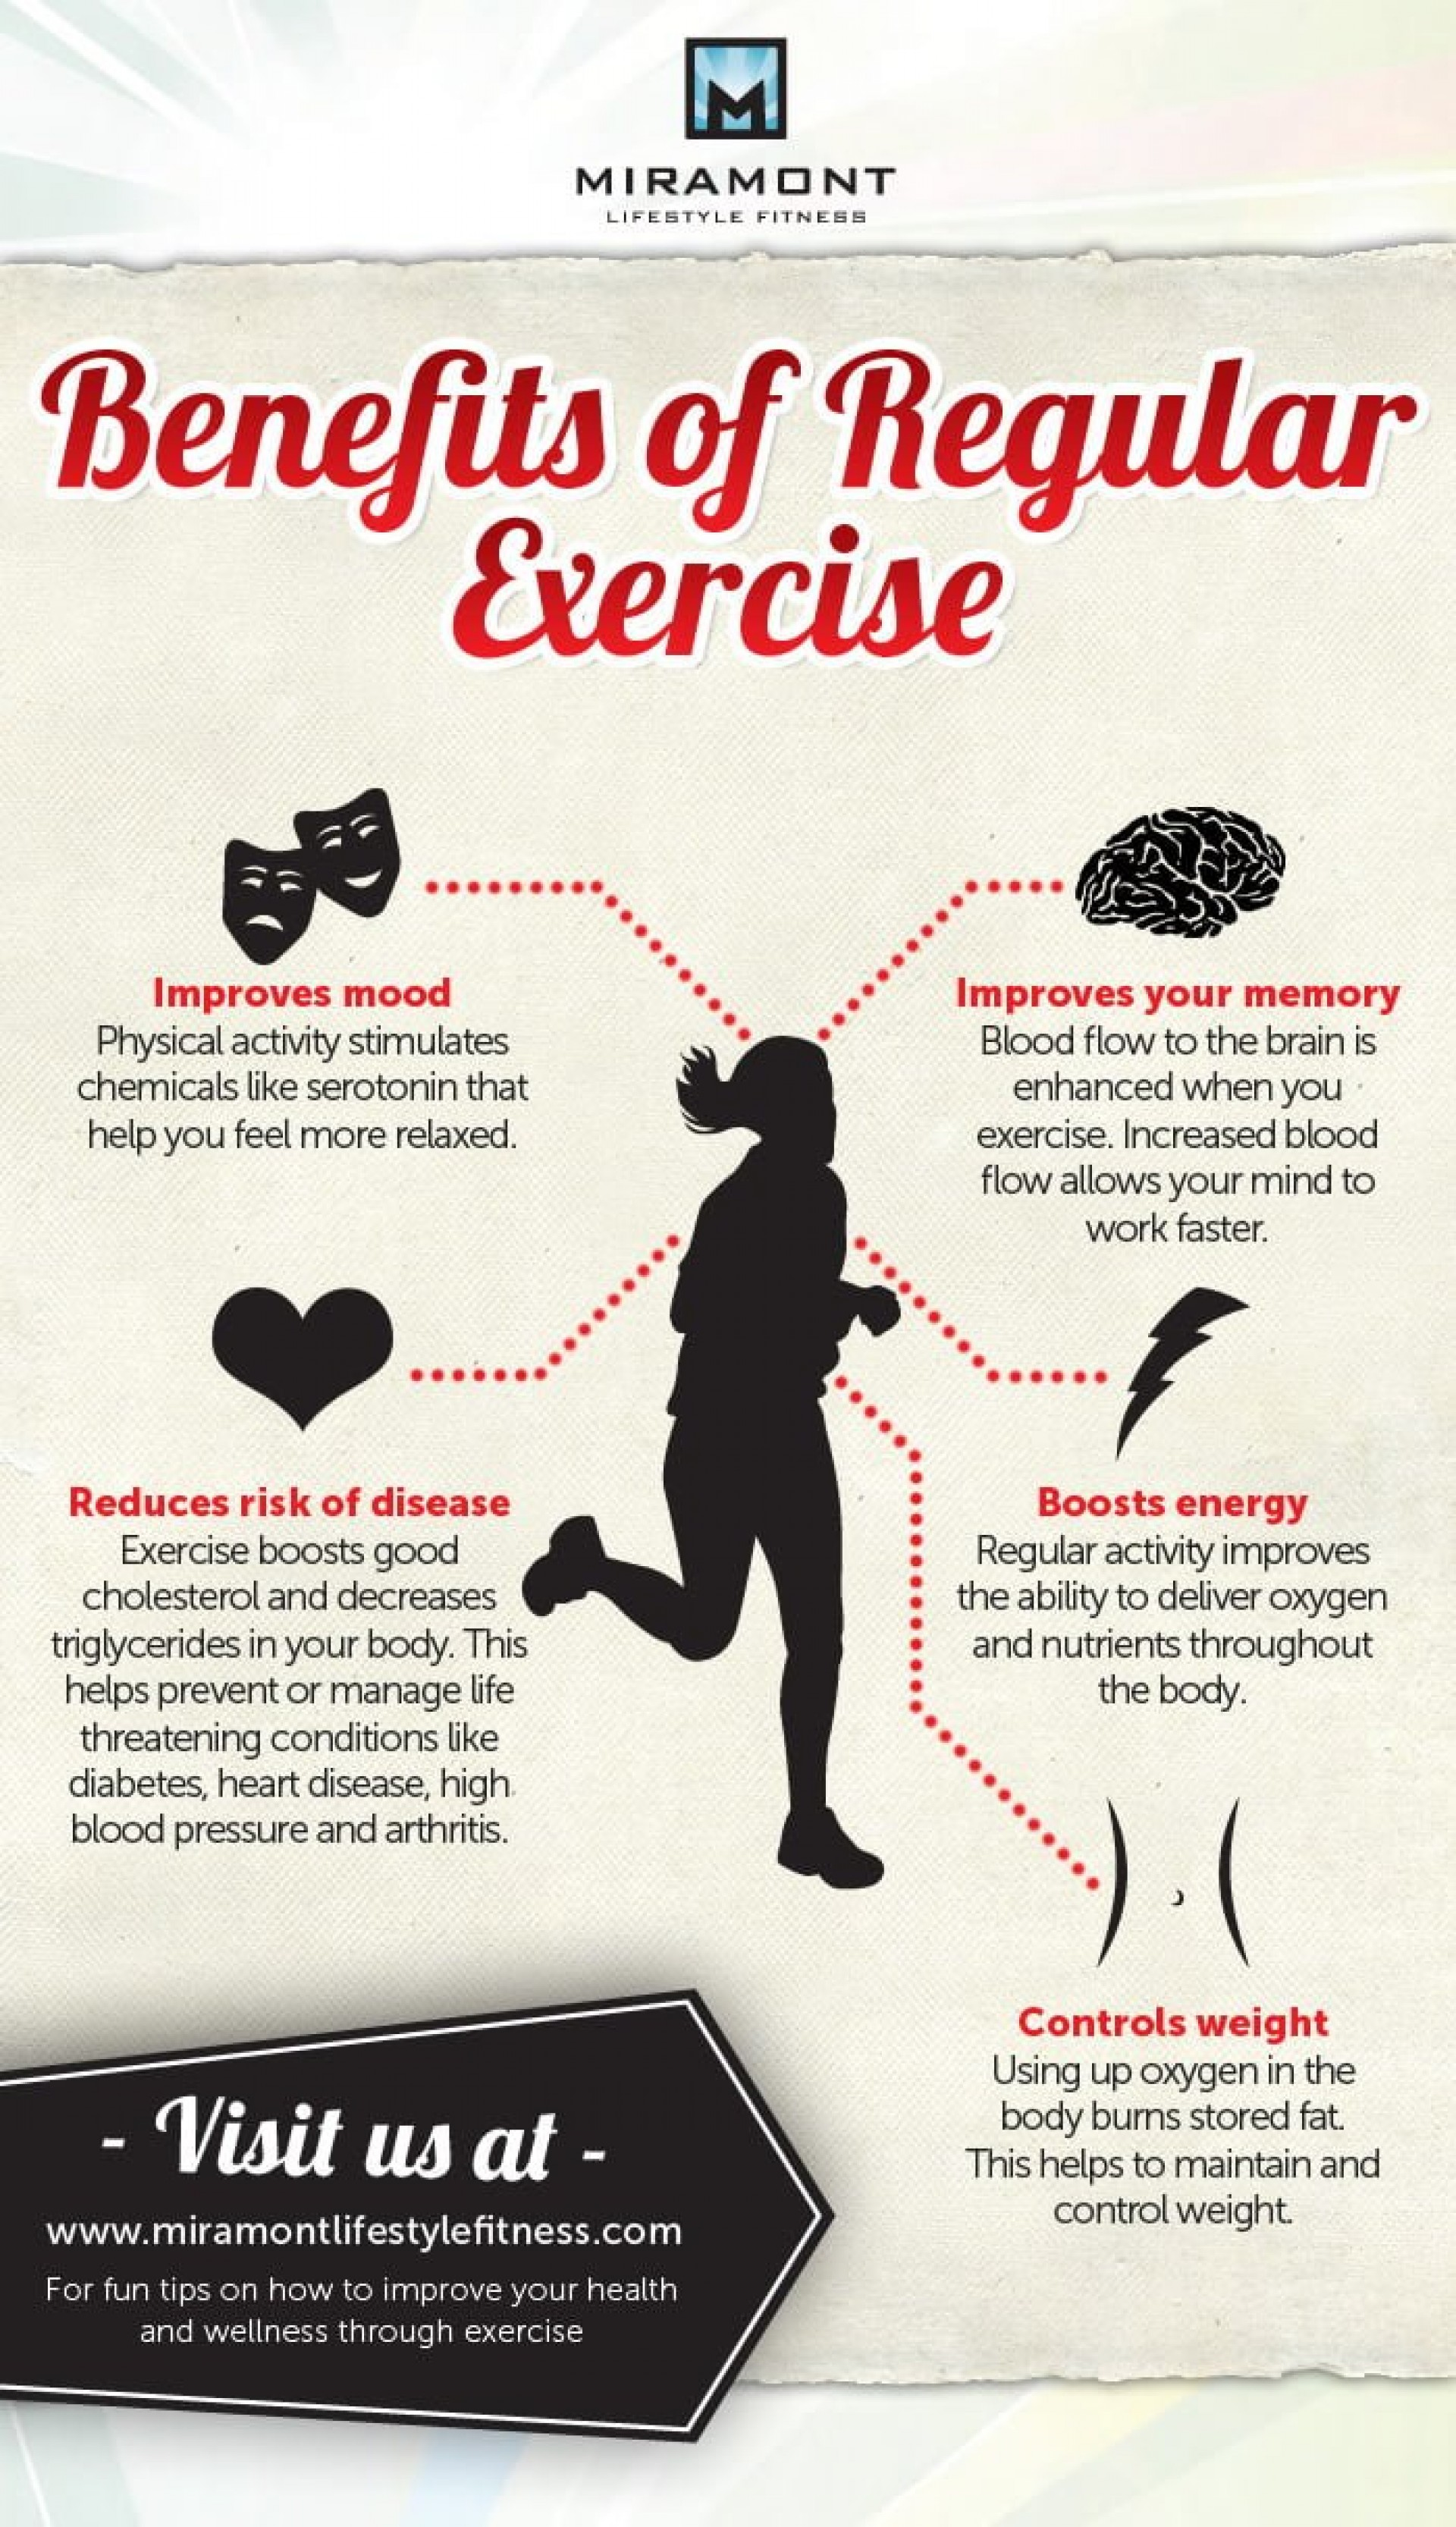 016 Benefits Of Regular Exercise Infographic Essay On Impressive Physical In 200 Words For Class 4 Hindi 1920